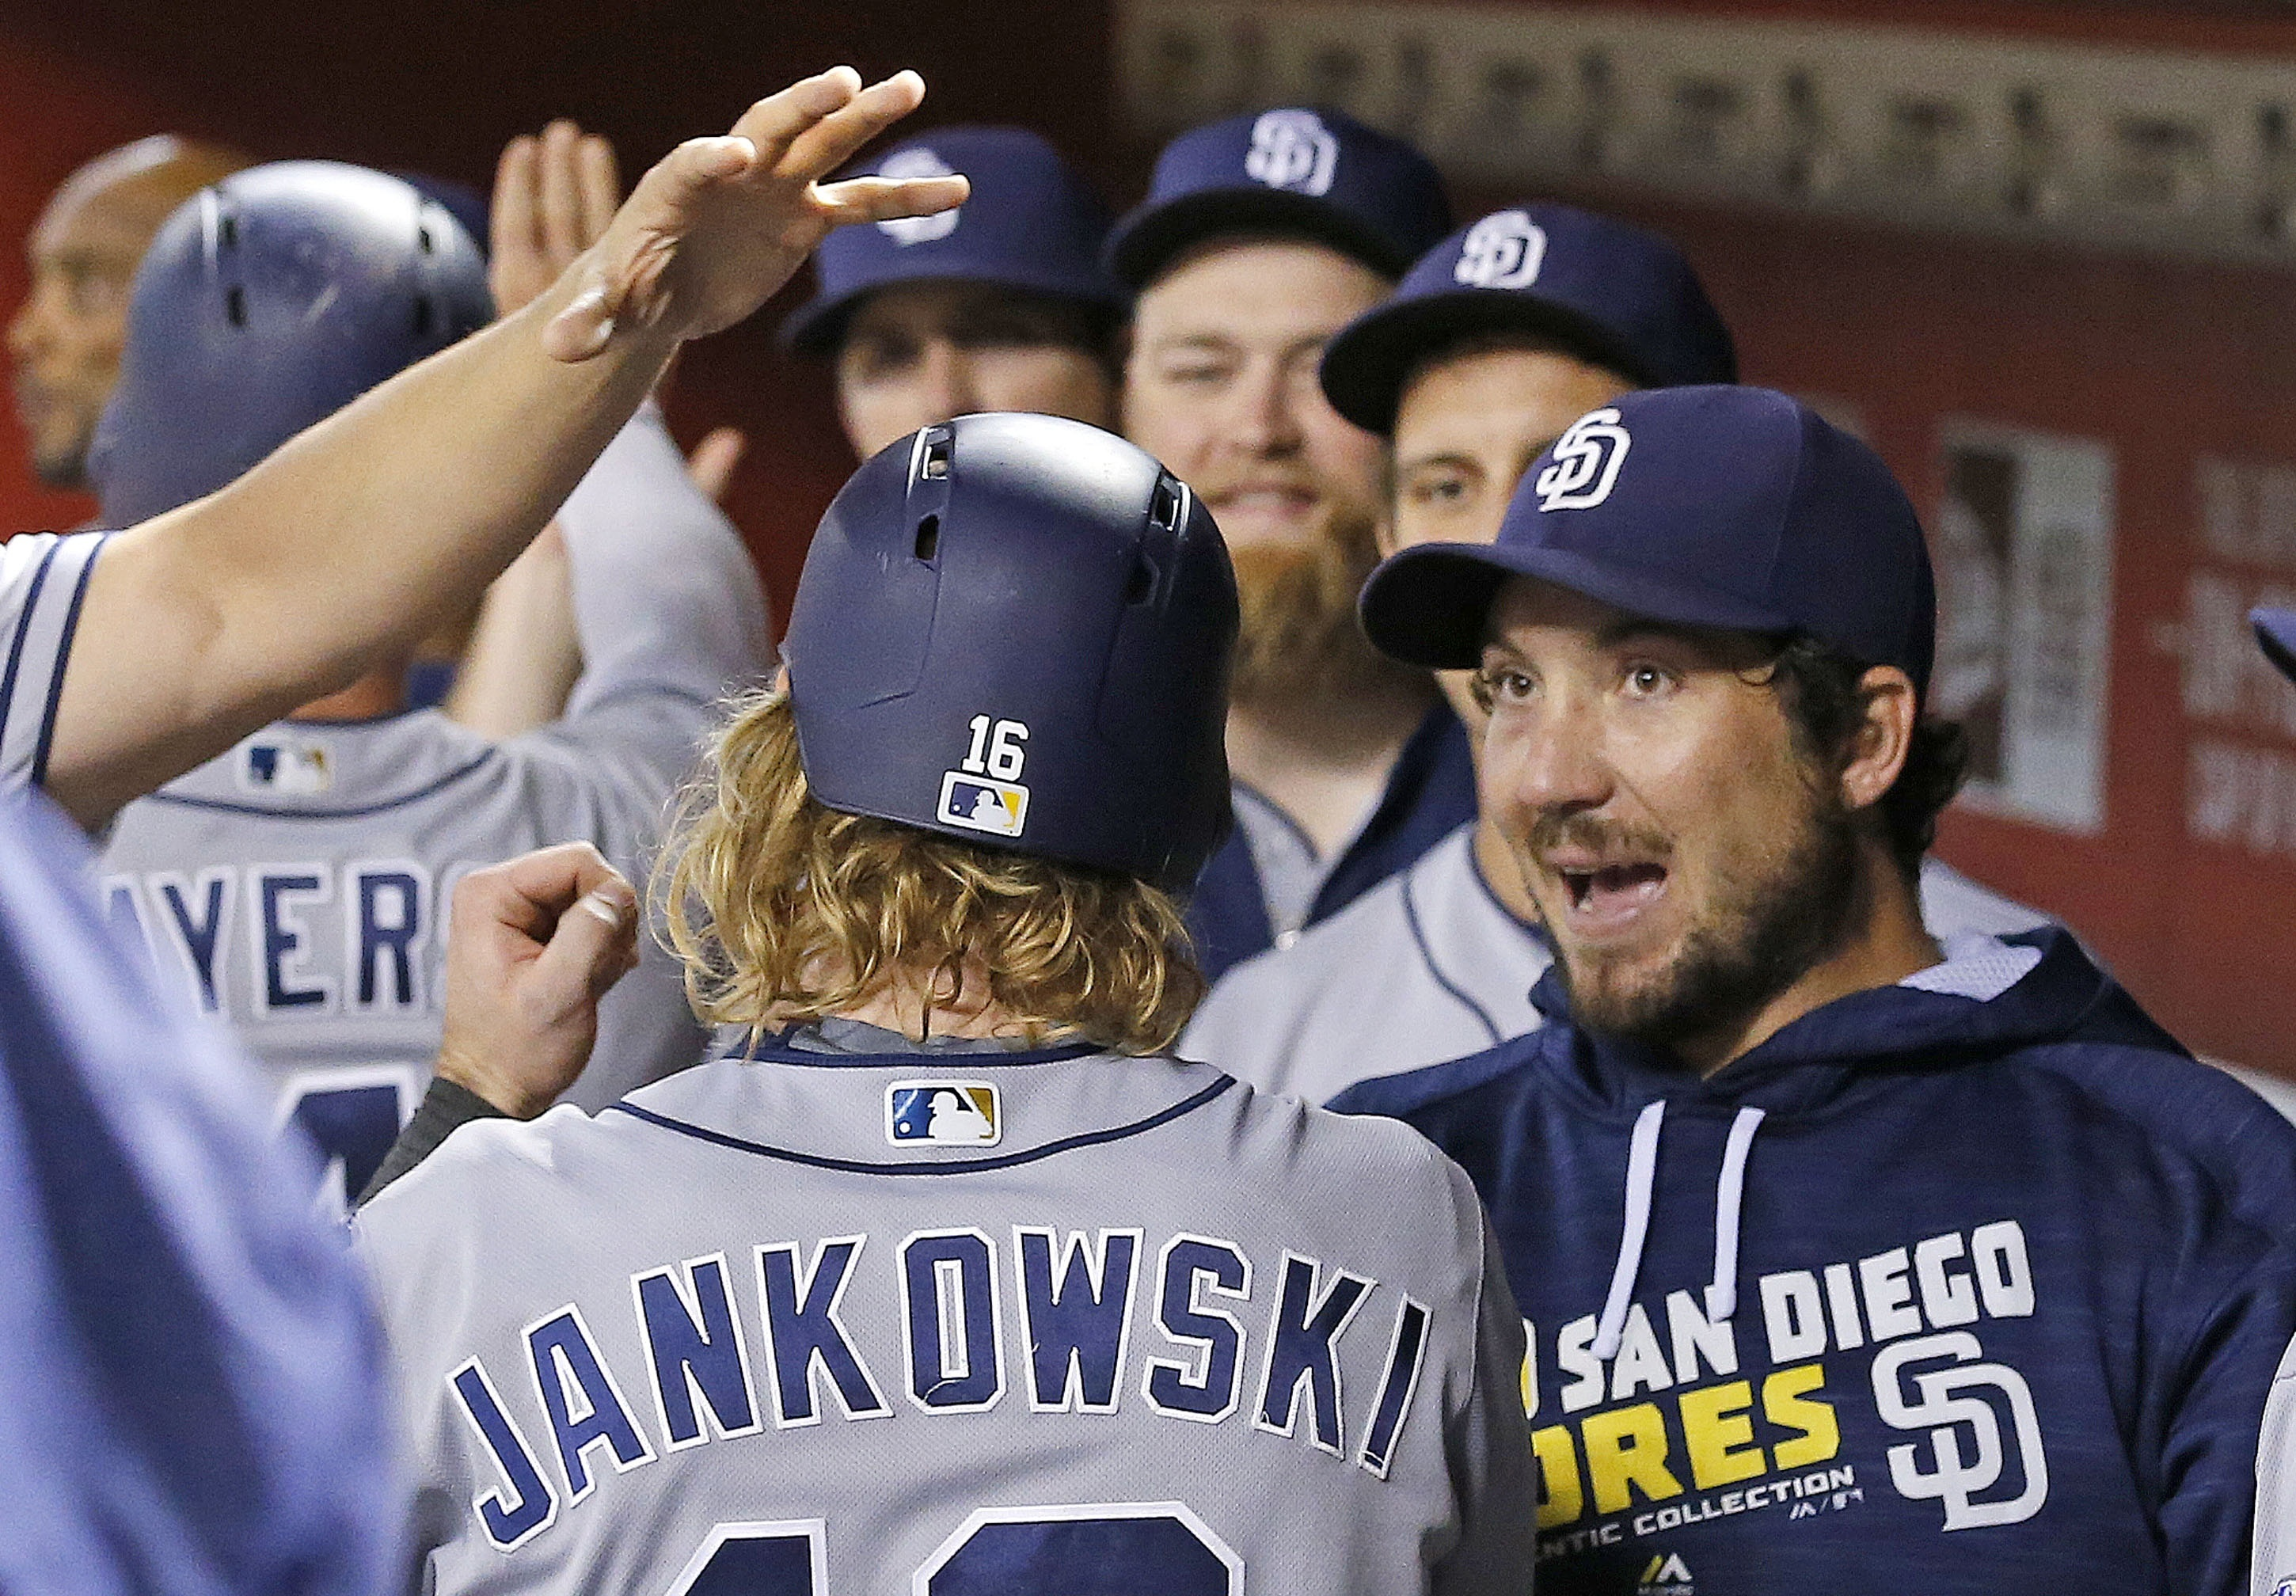 San Diego Padres' Travis Jankowski, left, celebrates his run scored against the Arizona Diamondbacks with teammates, including Brett Wallace, right, during the seventh inning of a baseball game Wednesday, July 6, 2016, in Phoenix. (AP Photo/Ross D. Frankl